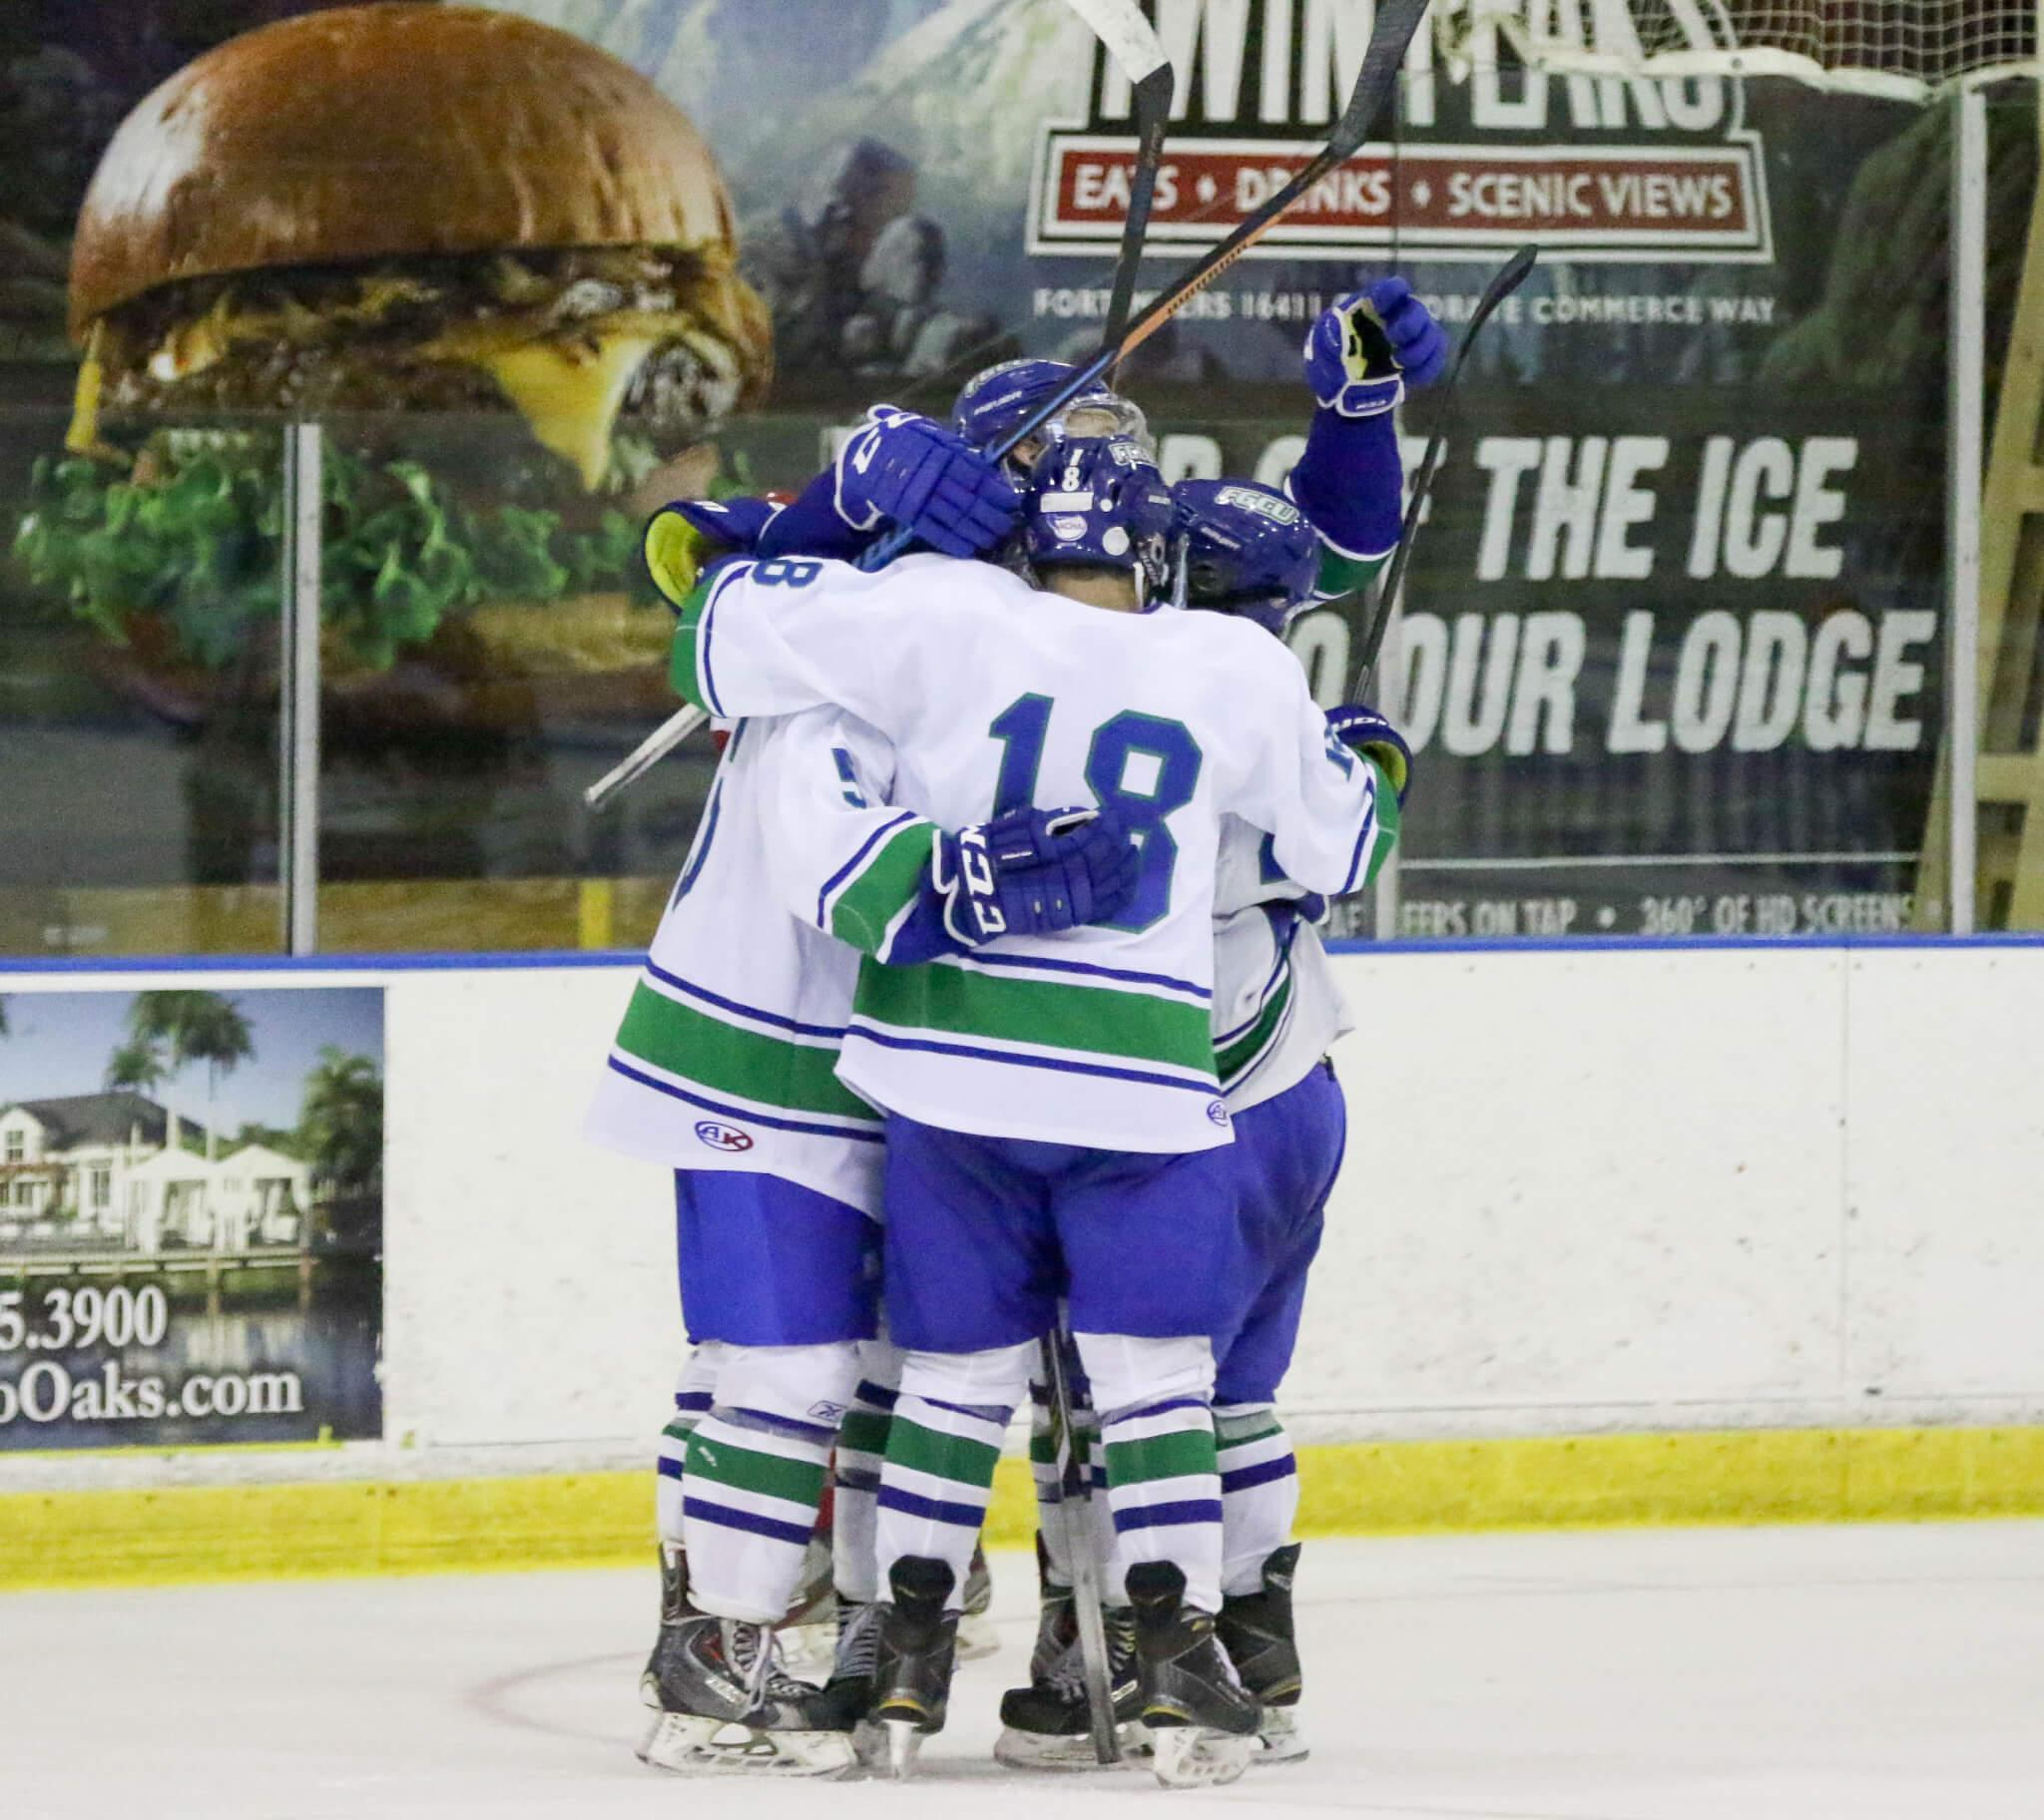 FGCU DII hockey completes first road trip, stay unbeaten